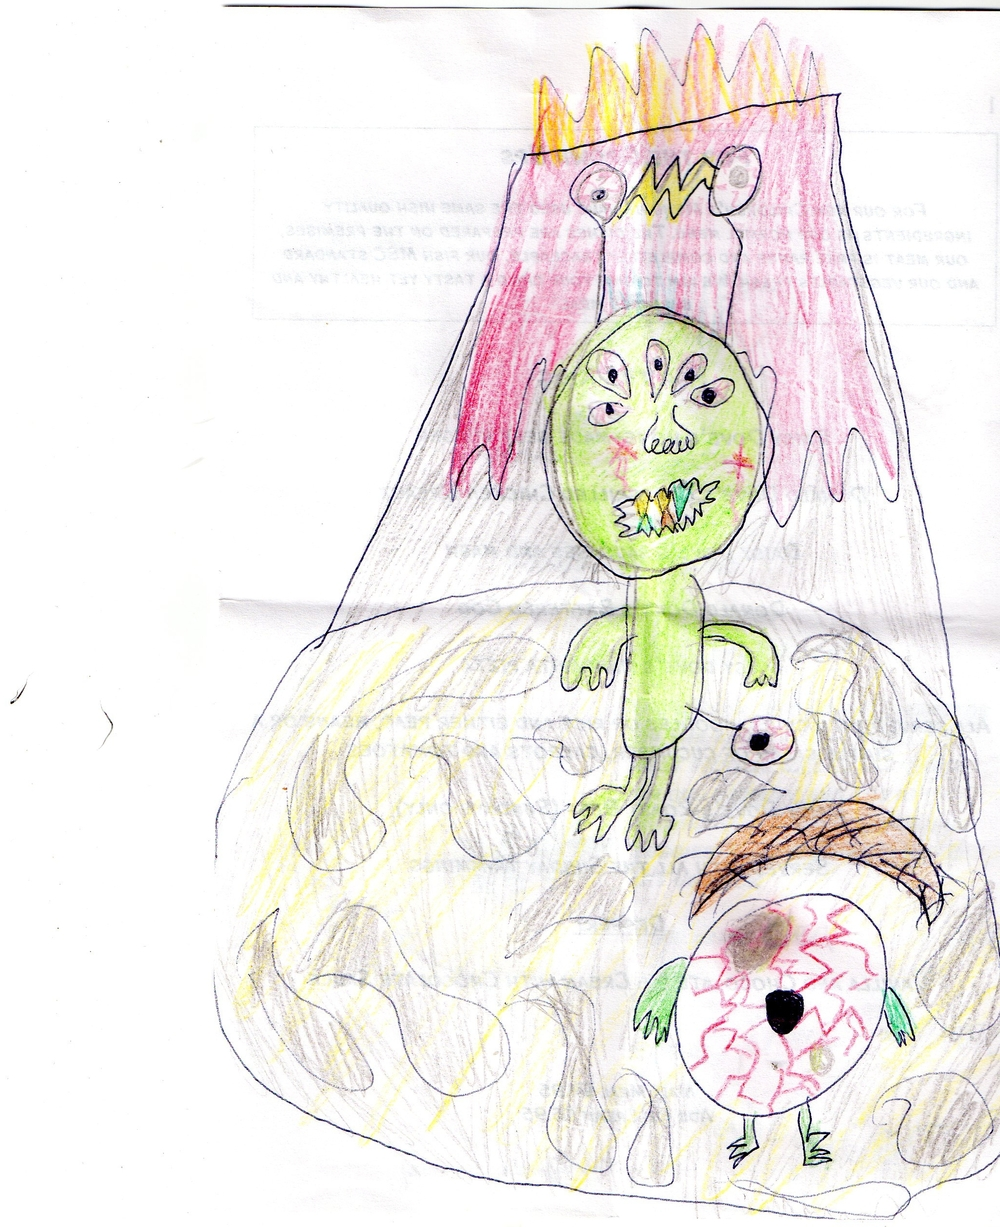 Winner of this weeks children's drawing competition.